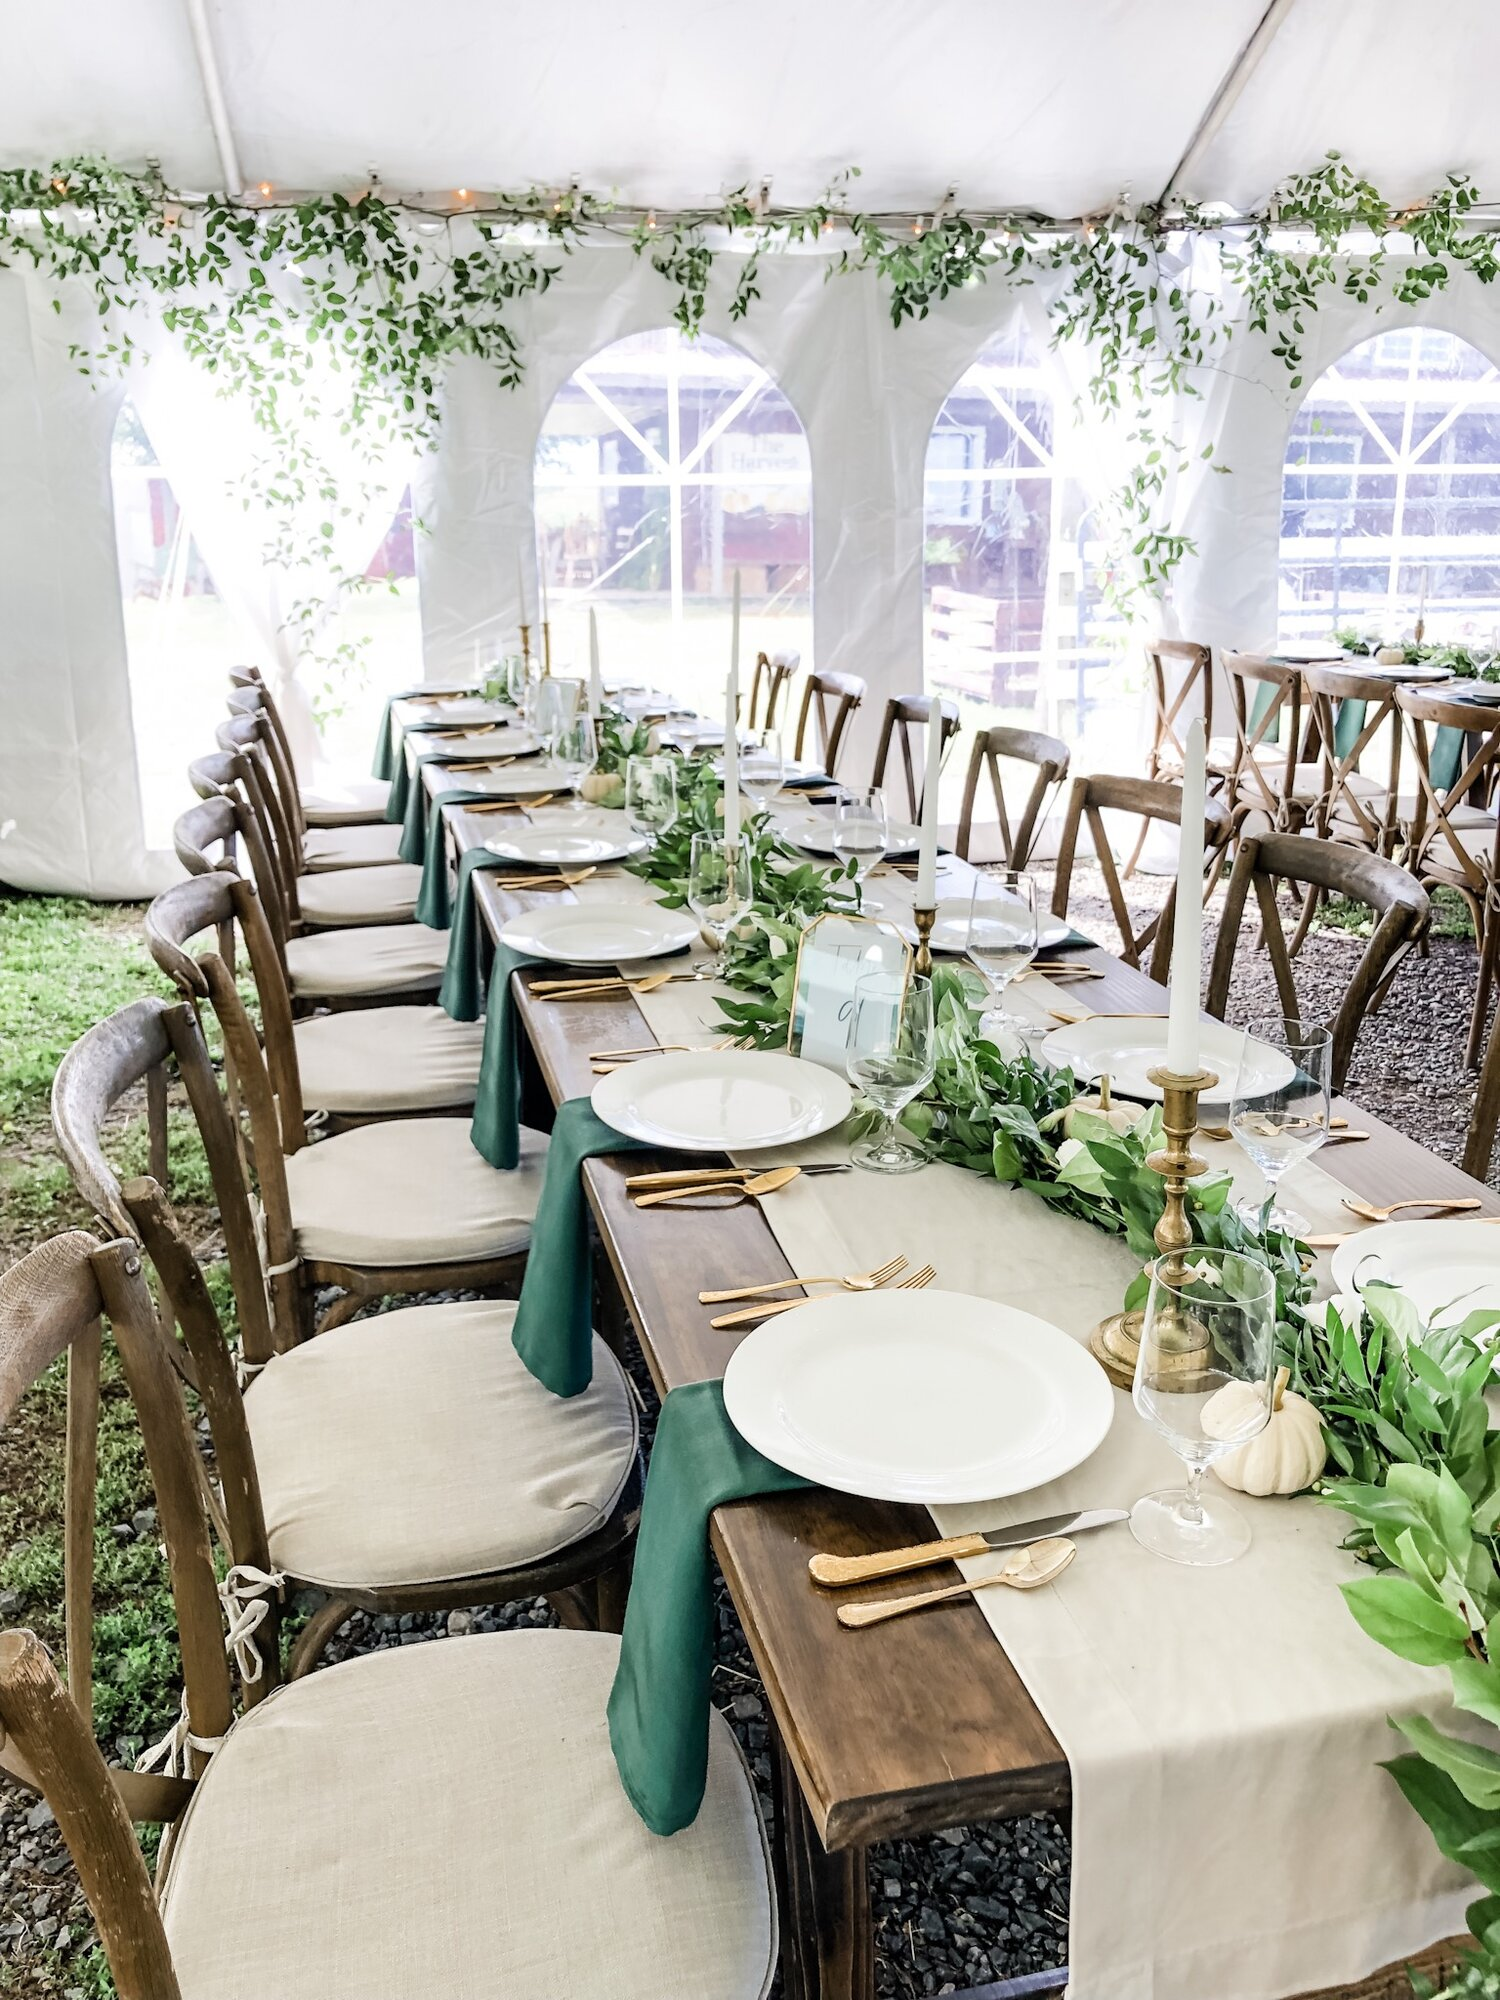 Planning design: Events by Carianne    Silverware: She Rents Vintage    Tent/Plates: Hank Parker    Garlands and Greenery: MoonRise Floral